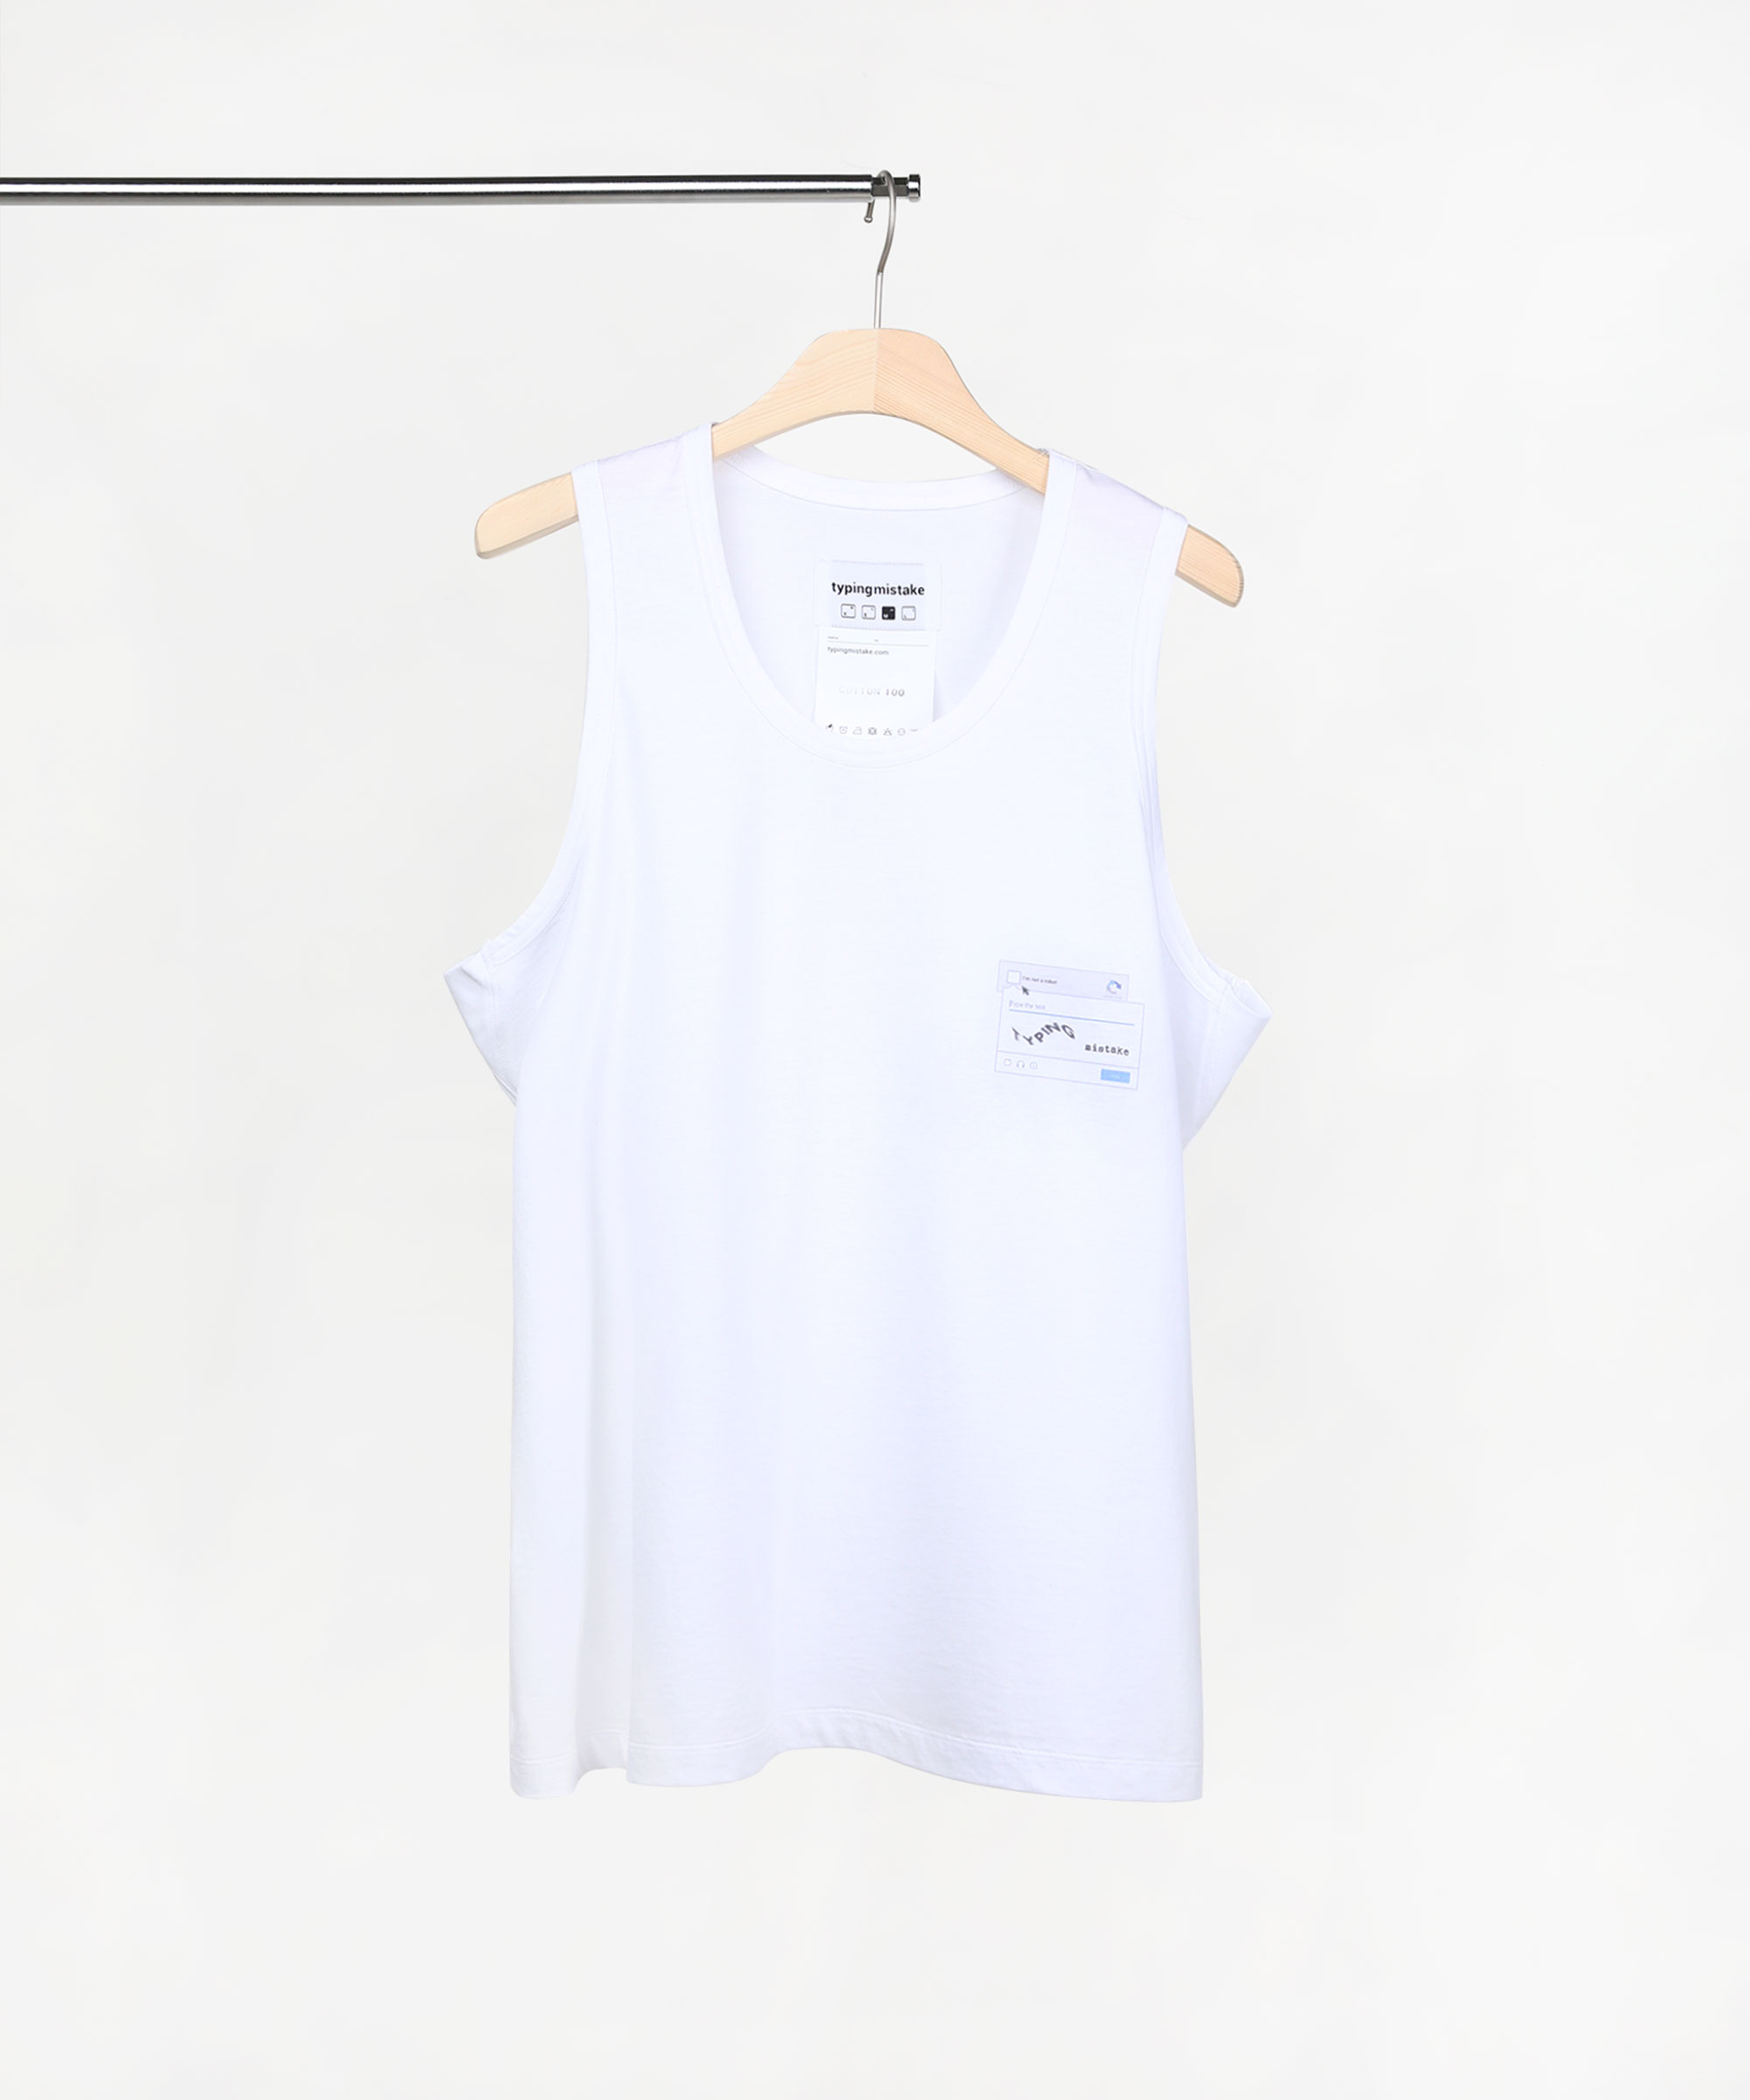 LOG IN ERROR SLEEVELESS T SHIRTS WHITE